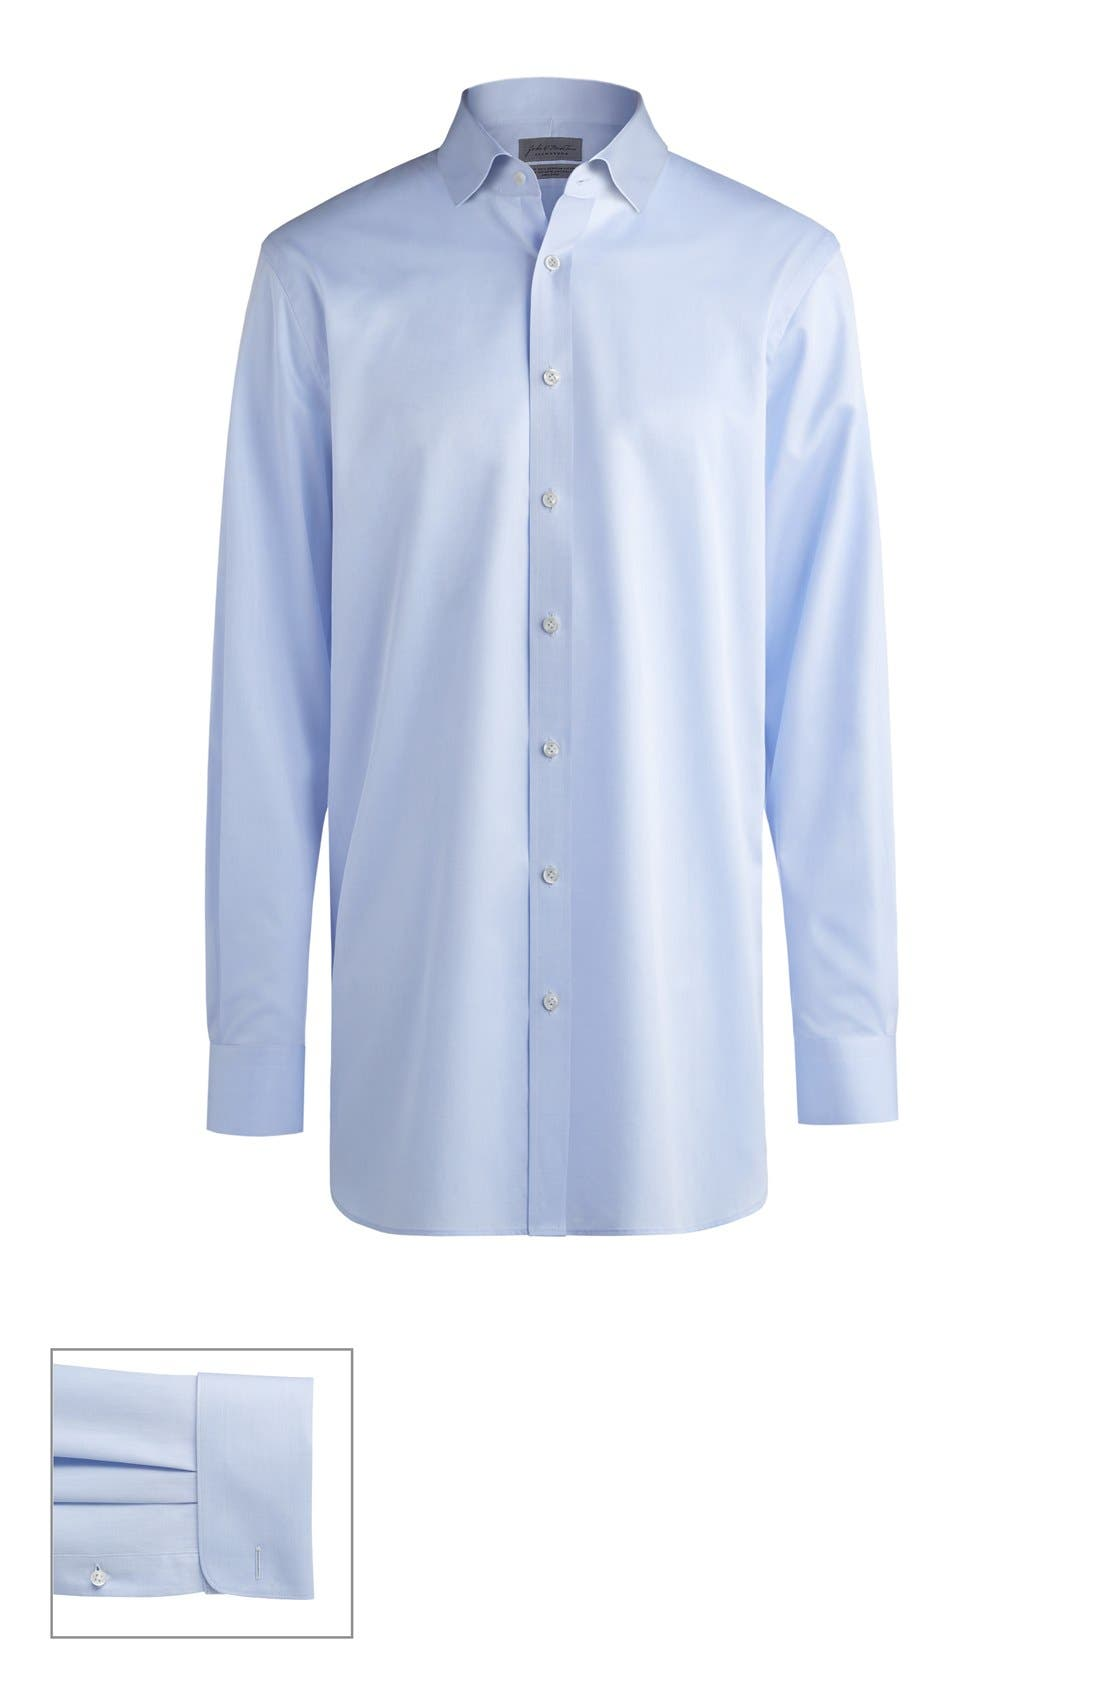 Made to Measure Extra Trim Fit Short Spread Collar Solid Dress Shirt,                             Main thumbnail 1, color,                             BLUE TWILL